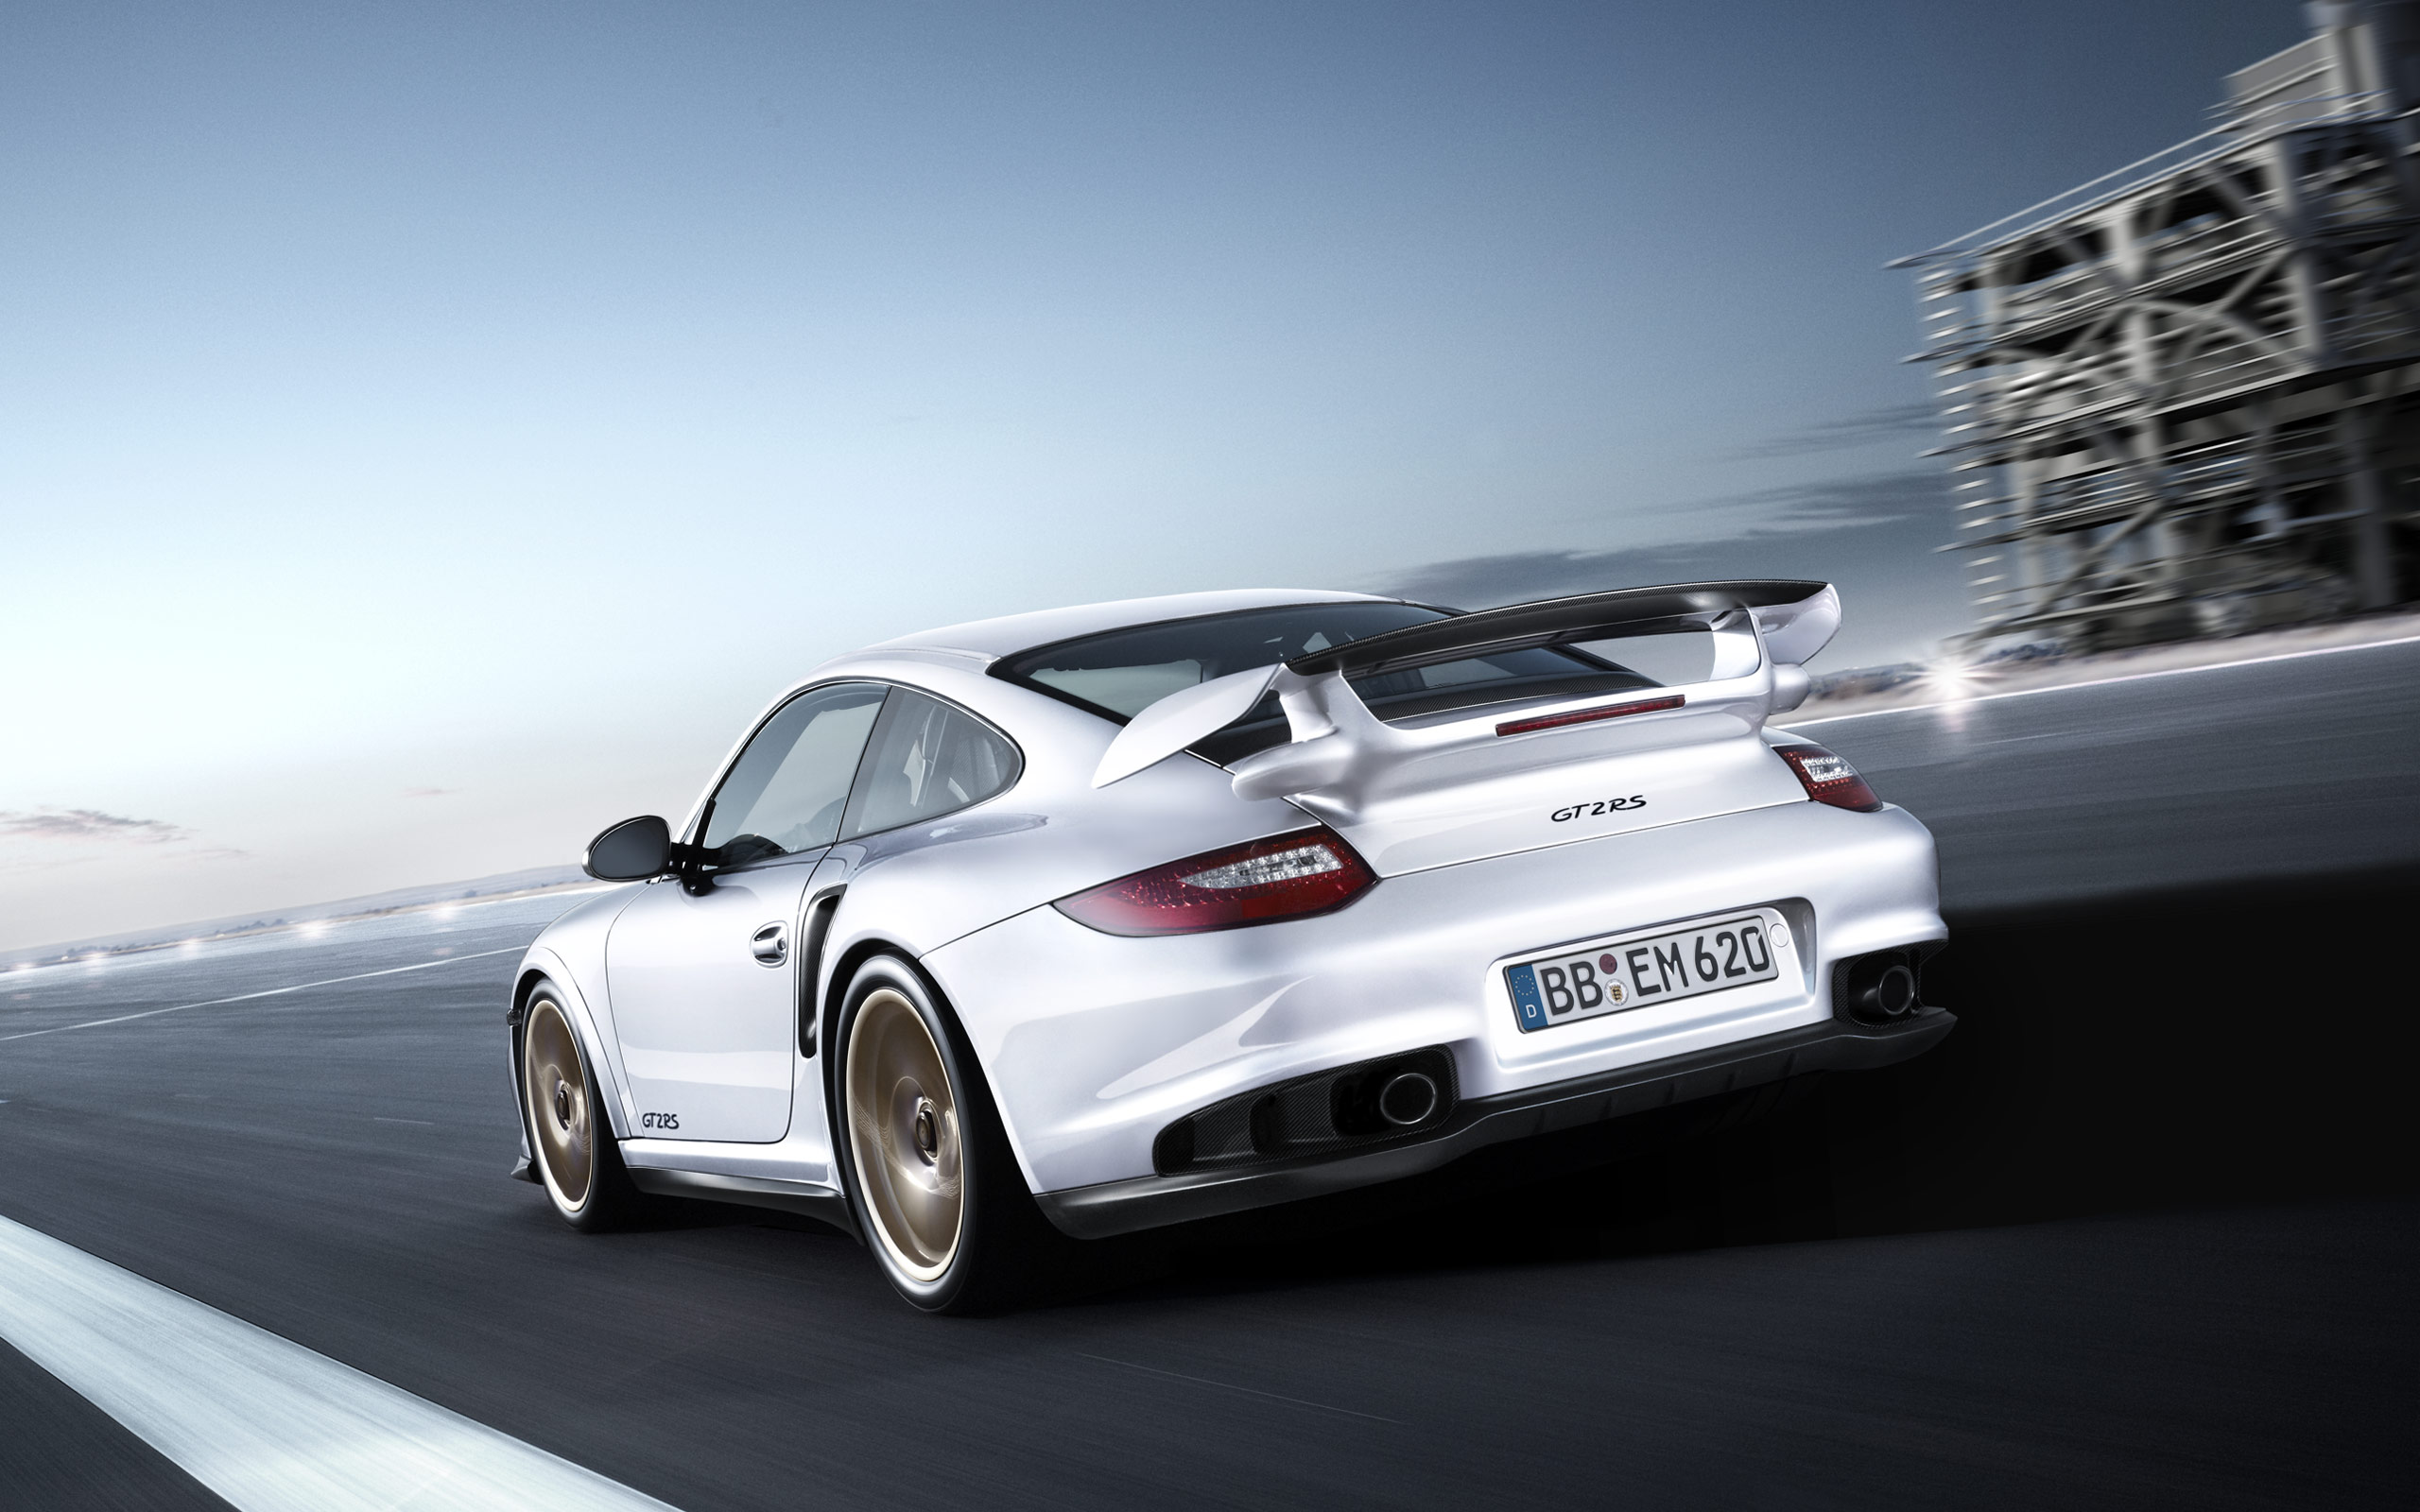 Porsche 911 Gt2 Rs Wallpaper Posted By John Walker